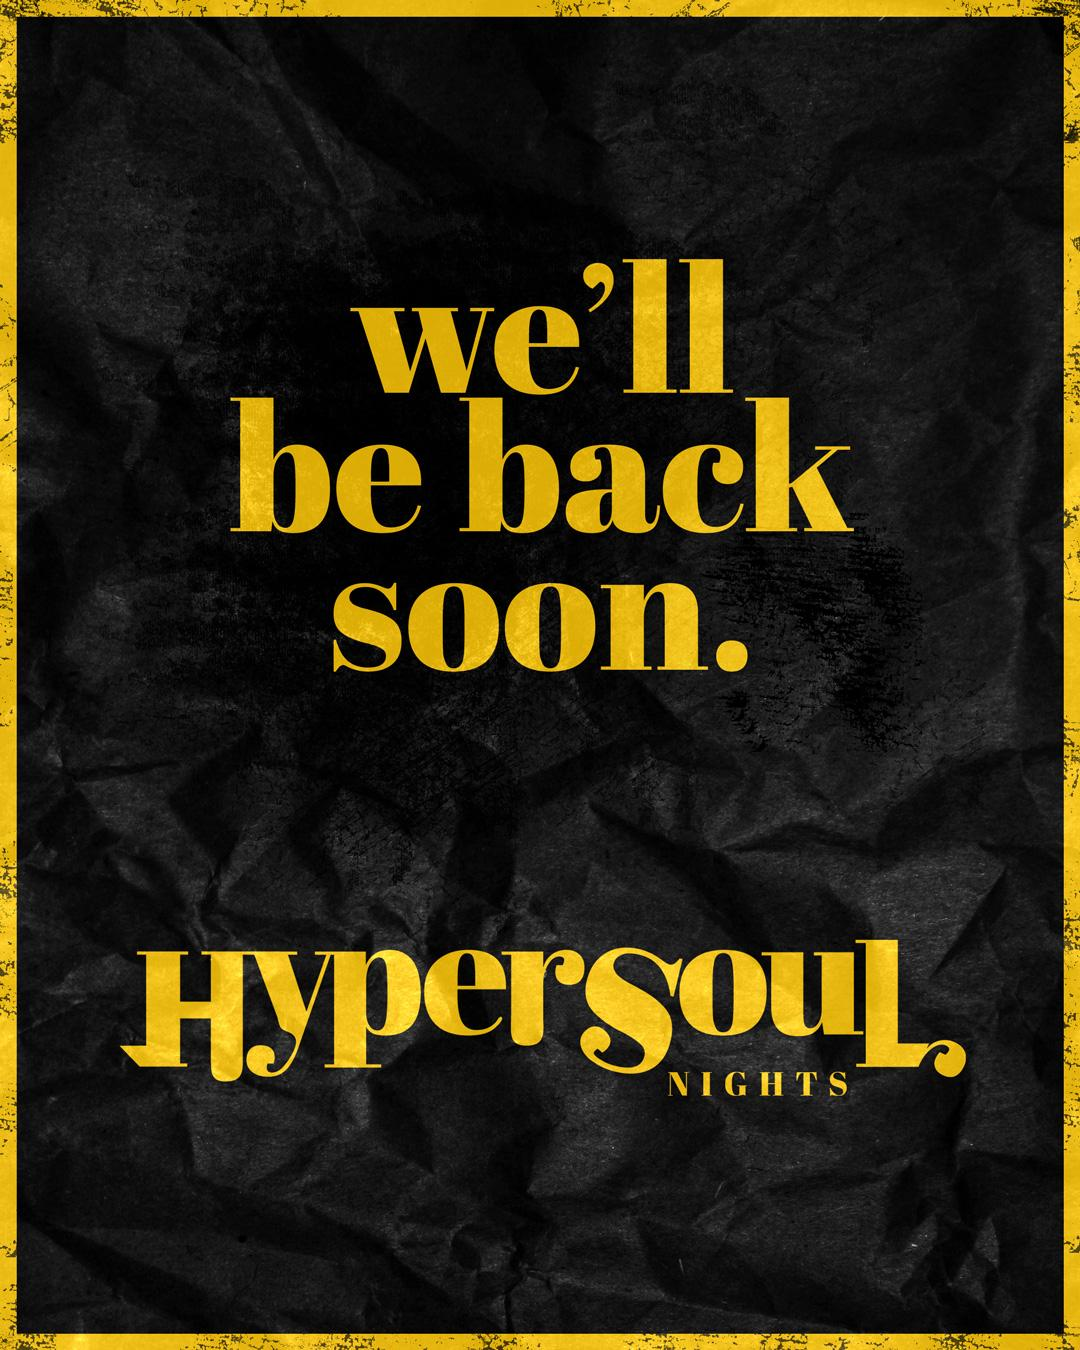 HYPER SOUL Nights with OVEOUS (5HR SET)